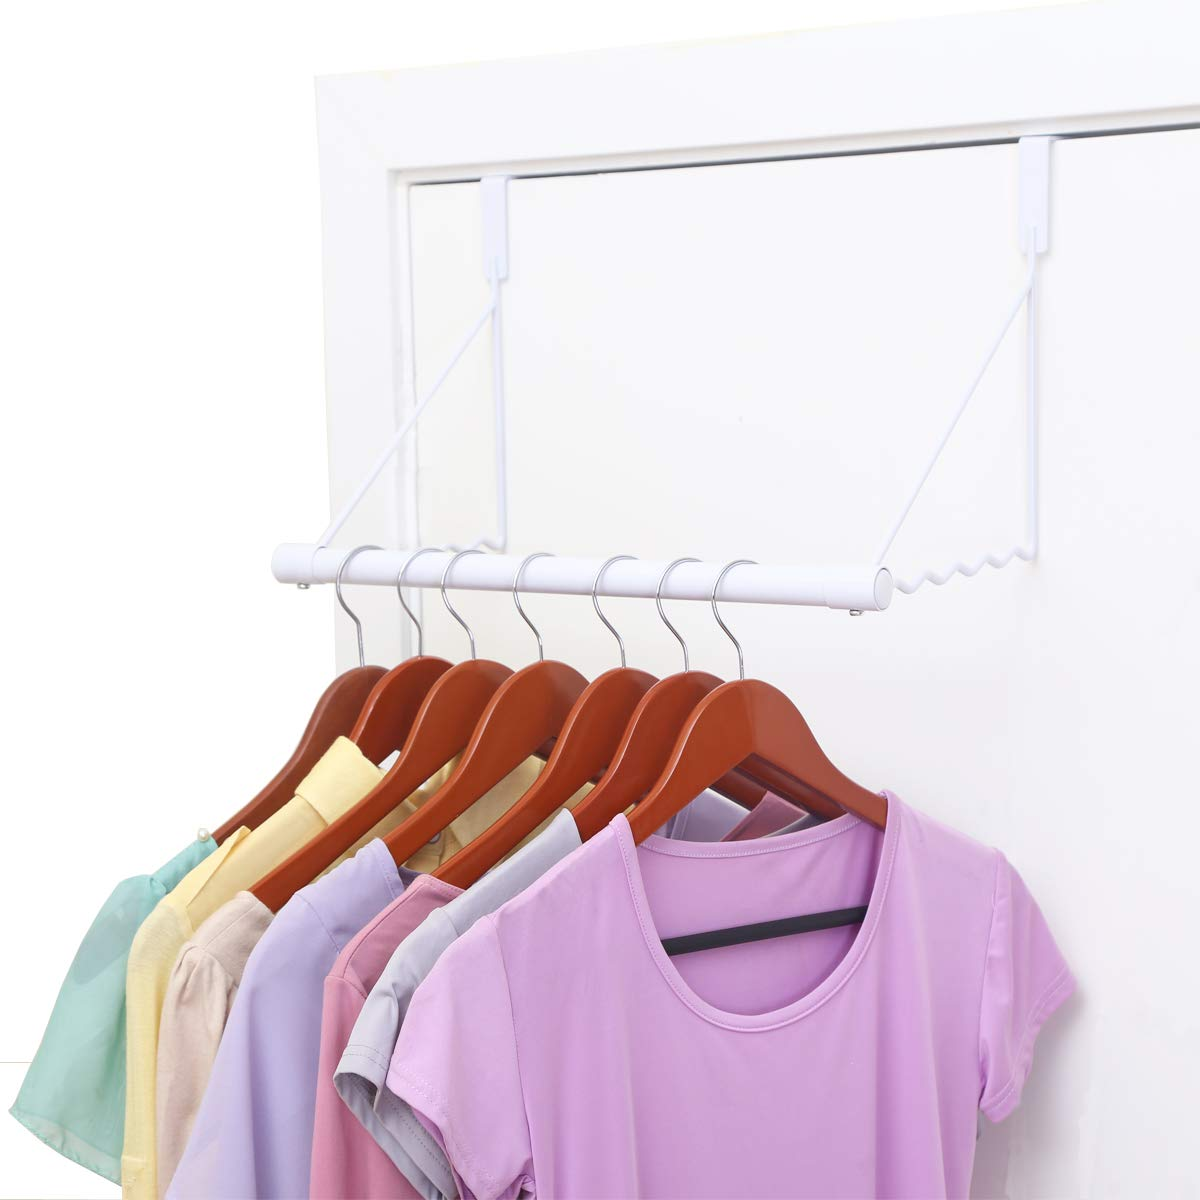 MAX Houser Over The Door Closet Rod, Over The Door Clothes Organizer Rack and Door Hanger for Clothing or Towel,Home Storage and Organization, Easy Installation (White)